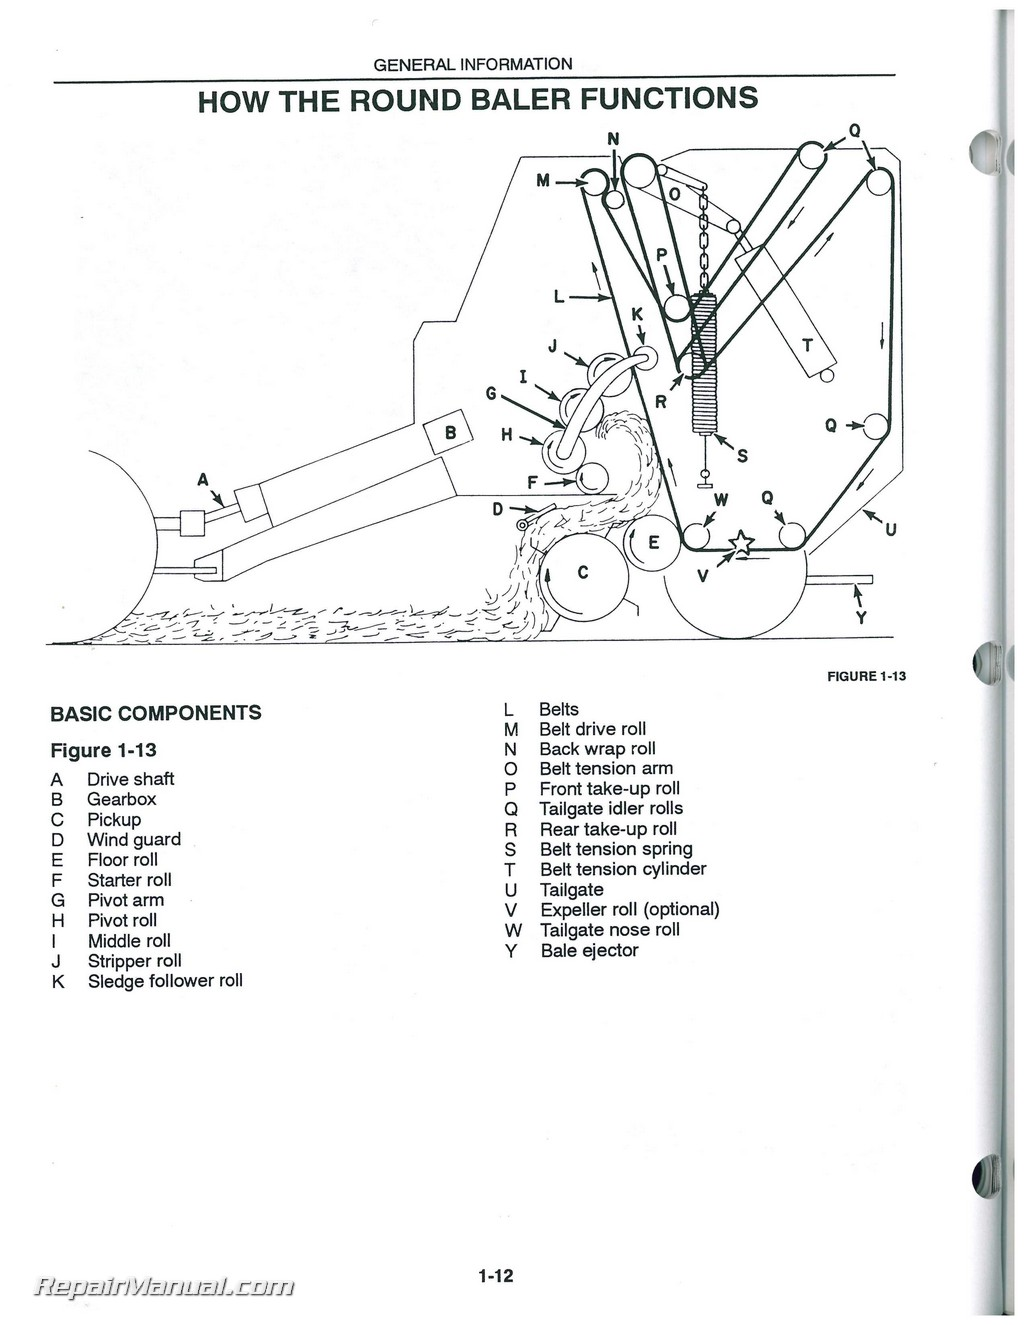 Steel Pipe Friction Loss Chart in addition Transmission Drive Belt M152284 in addition Grounding A Plastic Gas Tank also John Deere Ignition Switch Diagram additionally Used New Holland 640 650 660 Round Baler Operators Manual. on john deere water